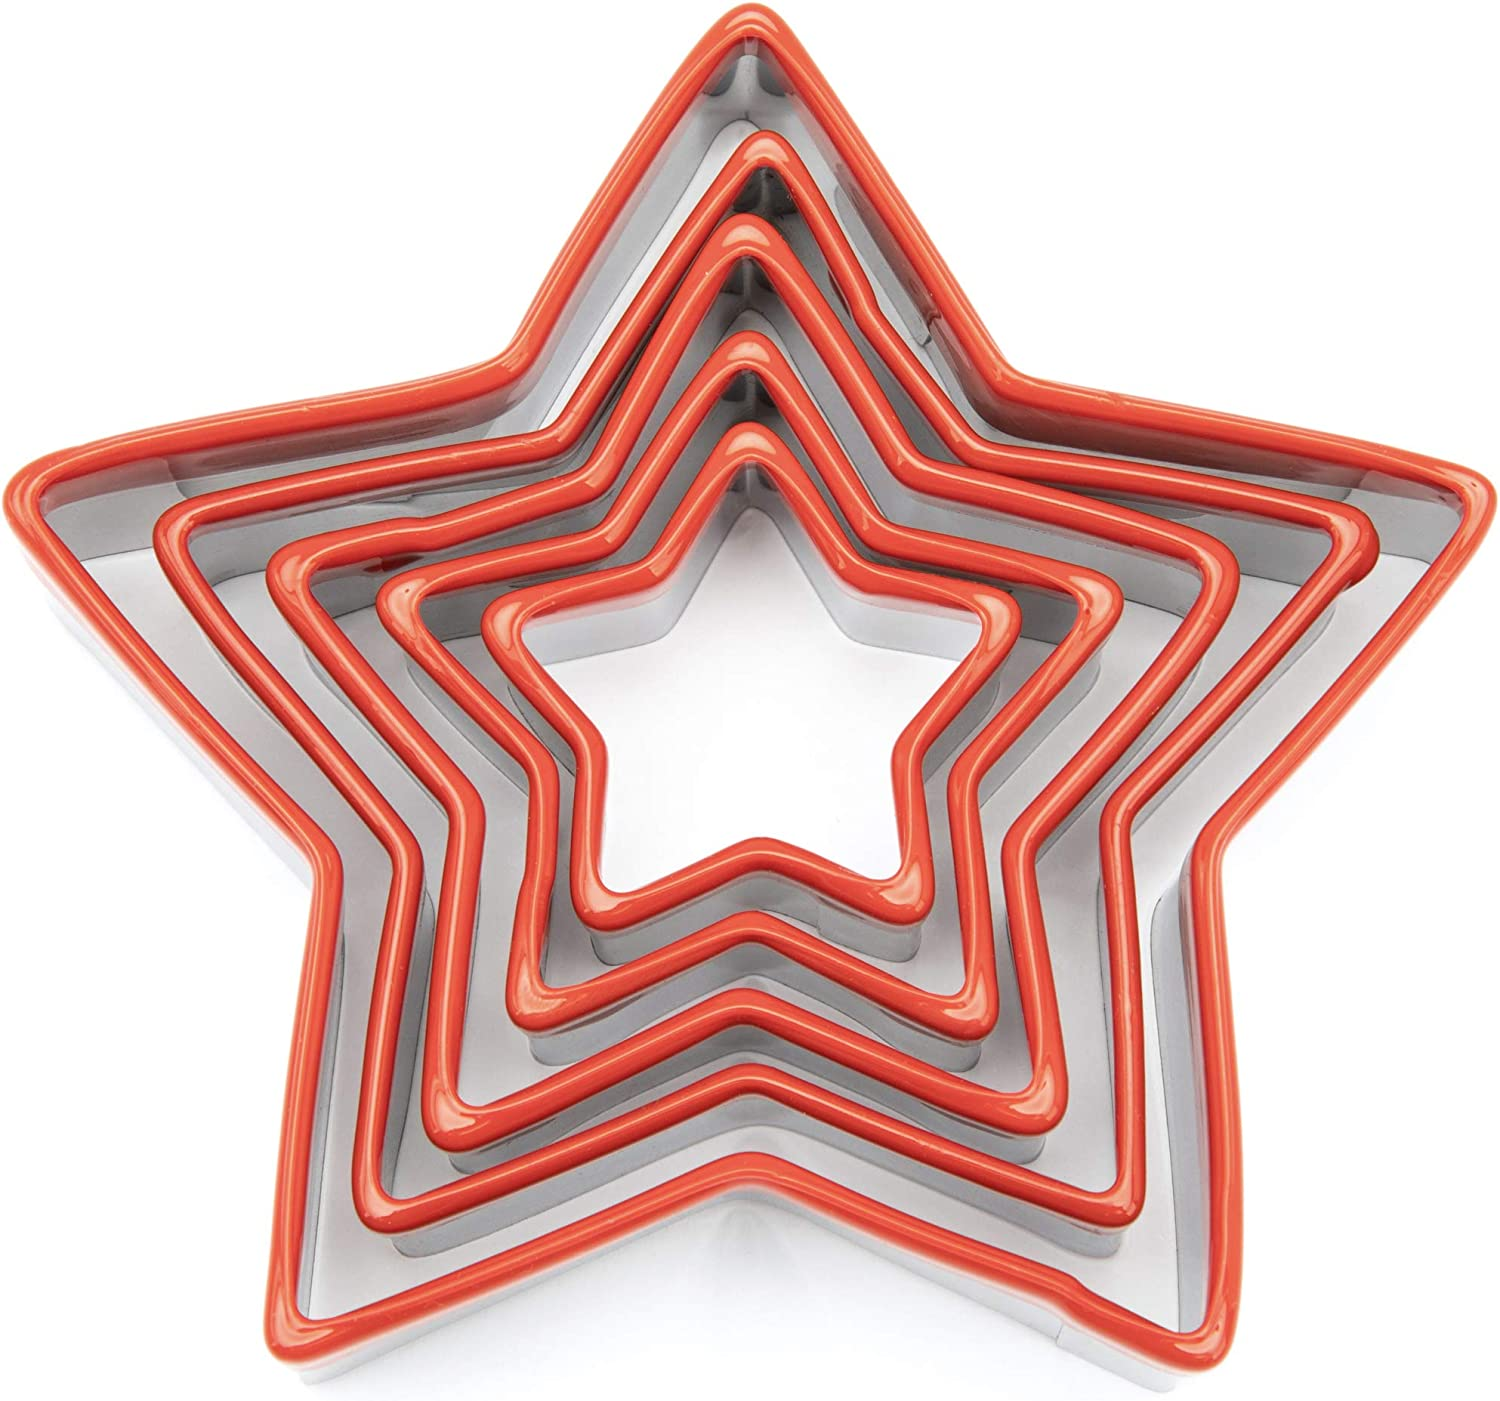 COOKIEQUE 5-Piece Star Cookie Cutters,0.4MM Thickness Heavy Duty Food-Grade Stainless Steel, Biscuit Cutter,Metal Cookie Cutters,Unique Design with Protective Red Top PVC.